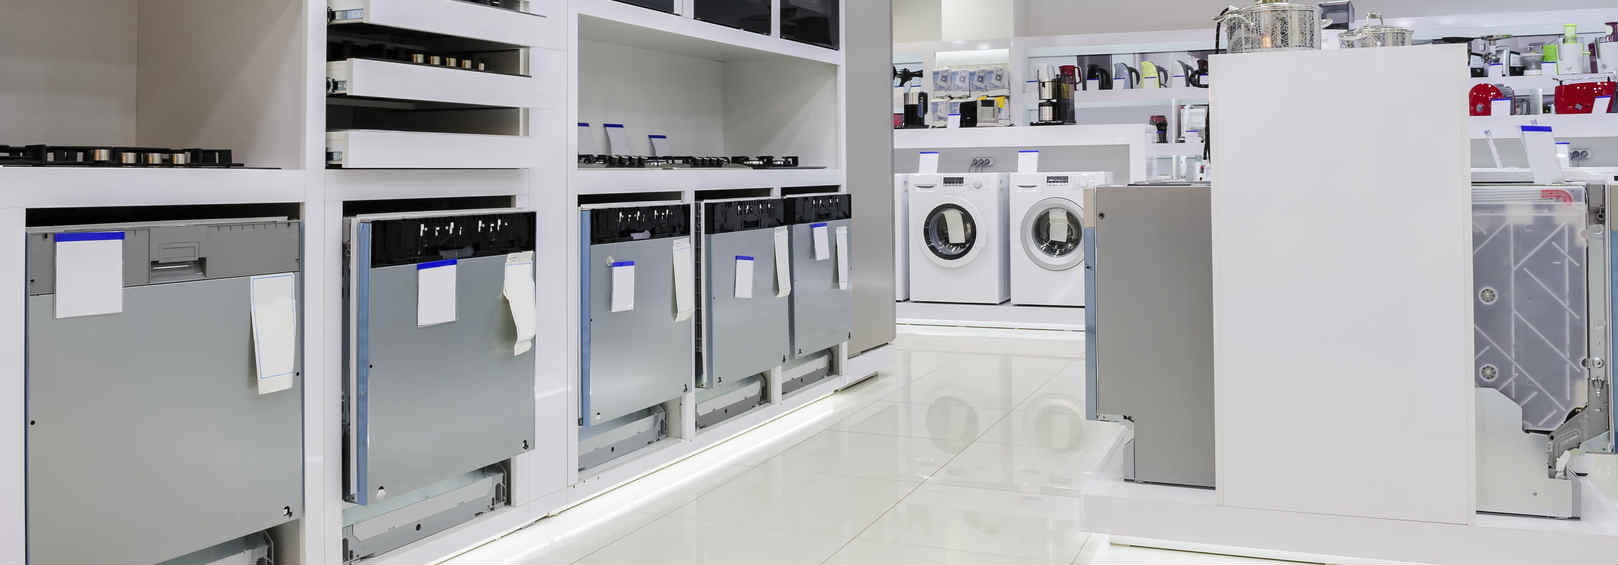 The Most Energy Efficient Appliances Canstar Blue